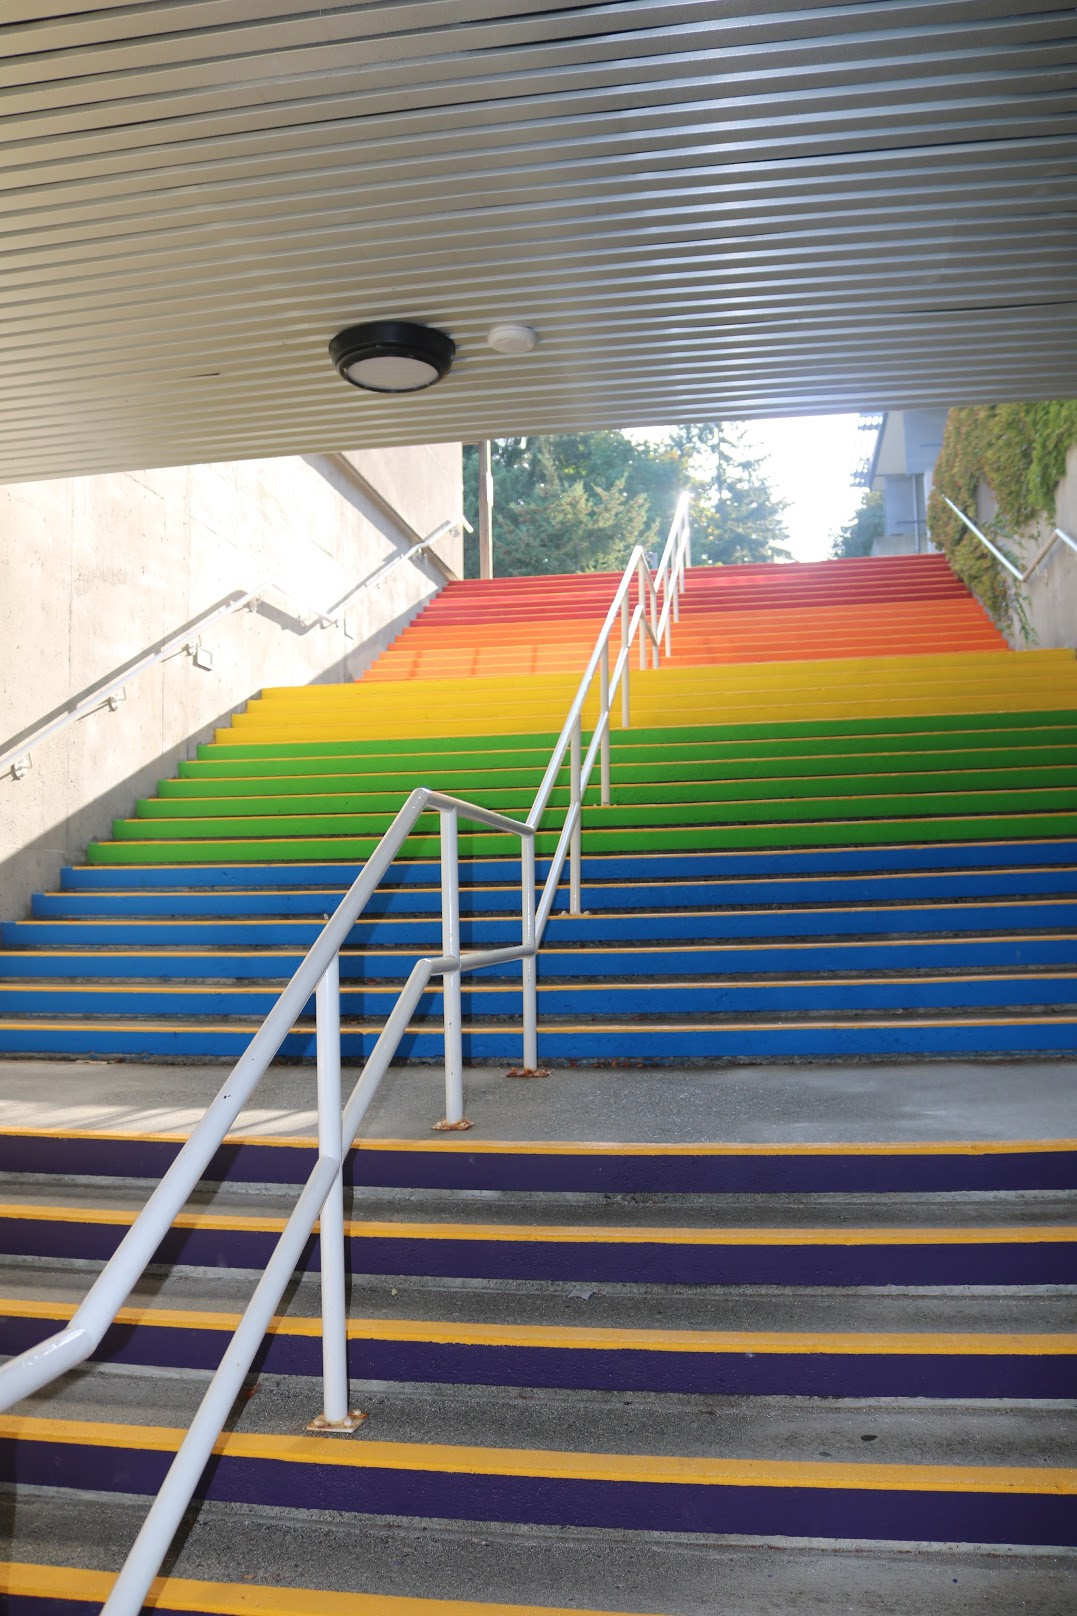 The photo shows the brightly coloured rainbow stairs that can be found on the Nanaimo campus of Vancouver Island University. The coloured steps go blue, green, yellow, orange, and then red up the stairs.